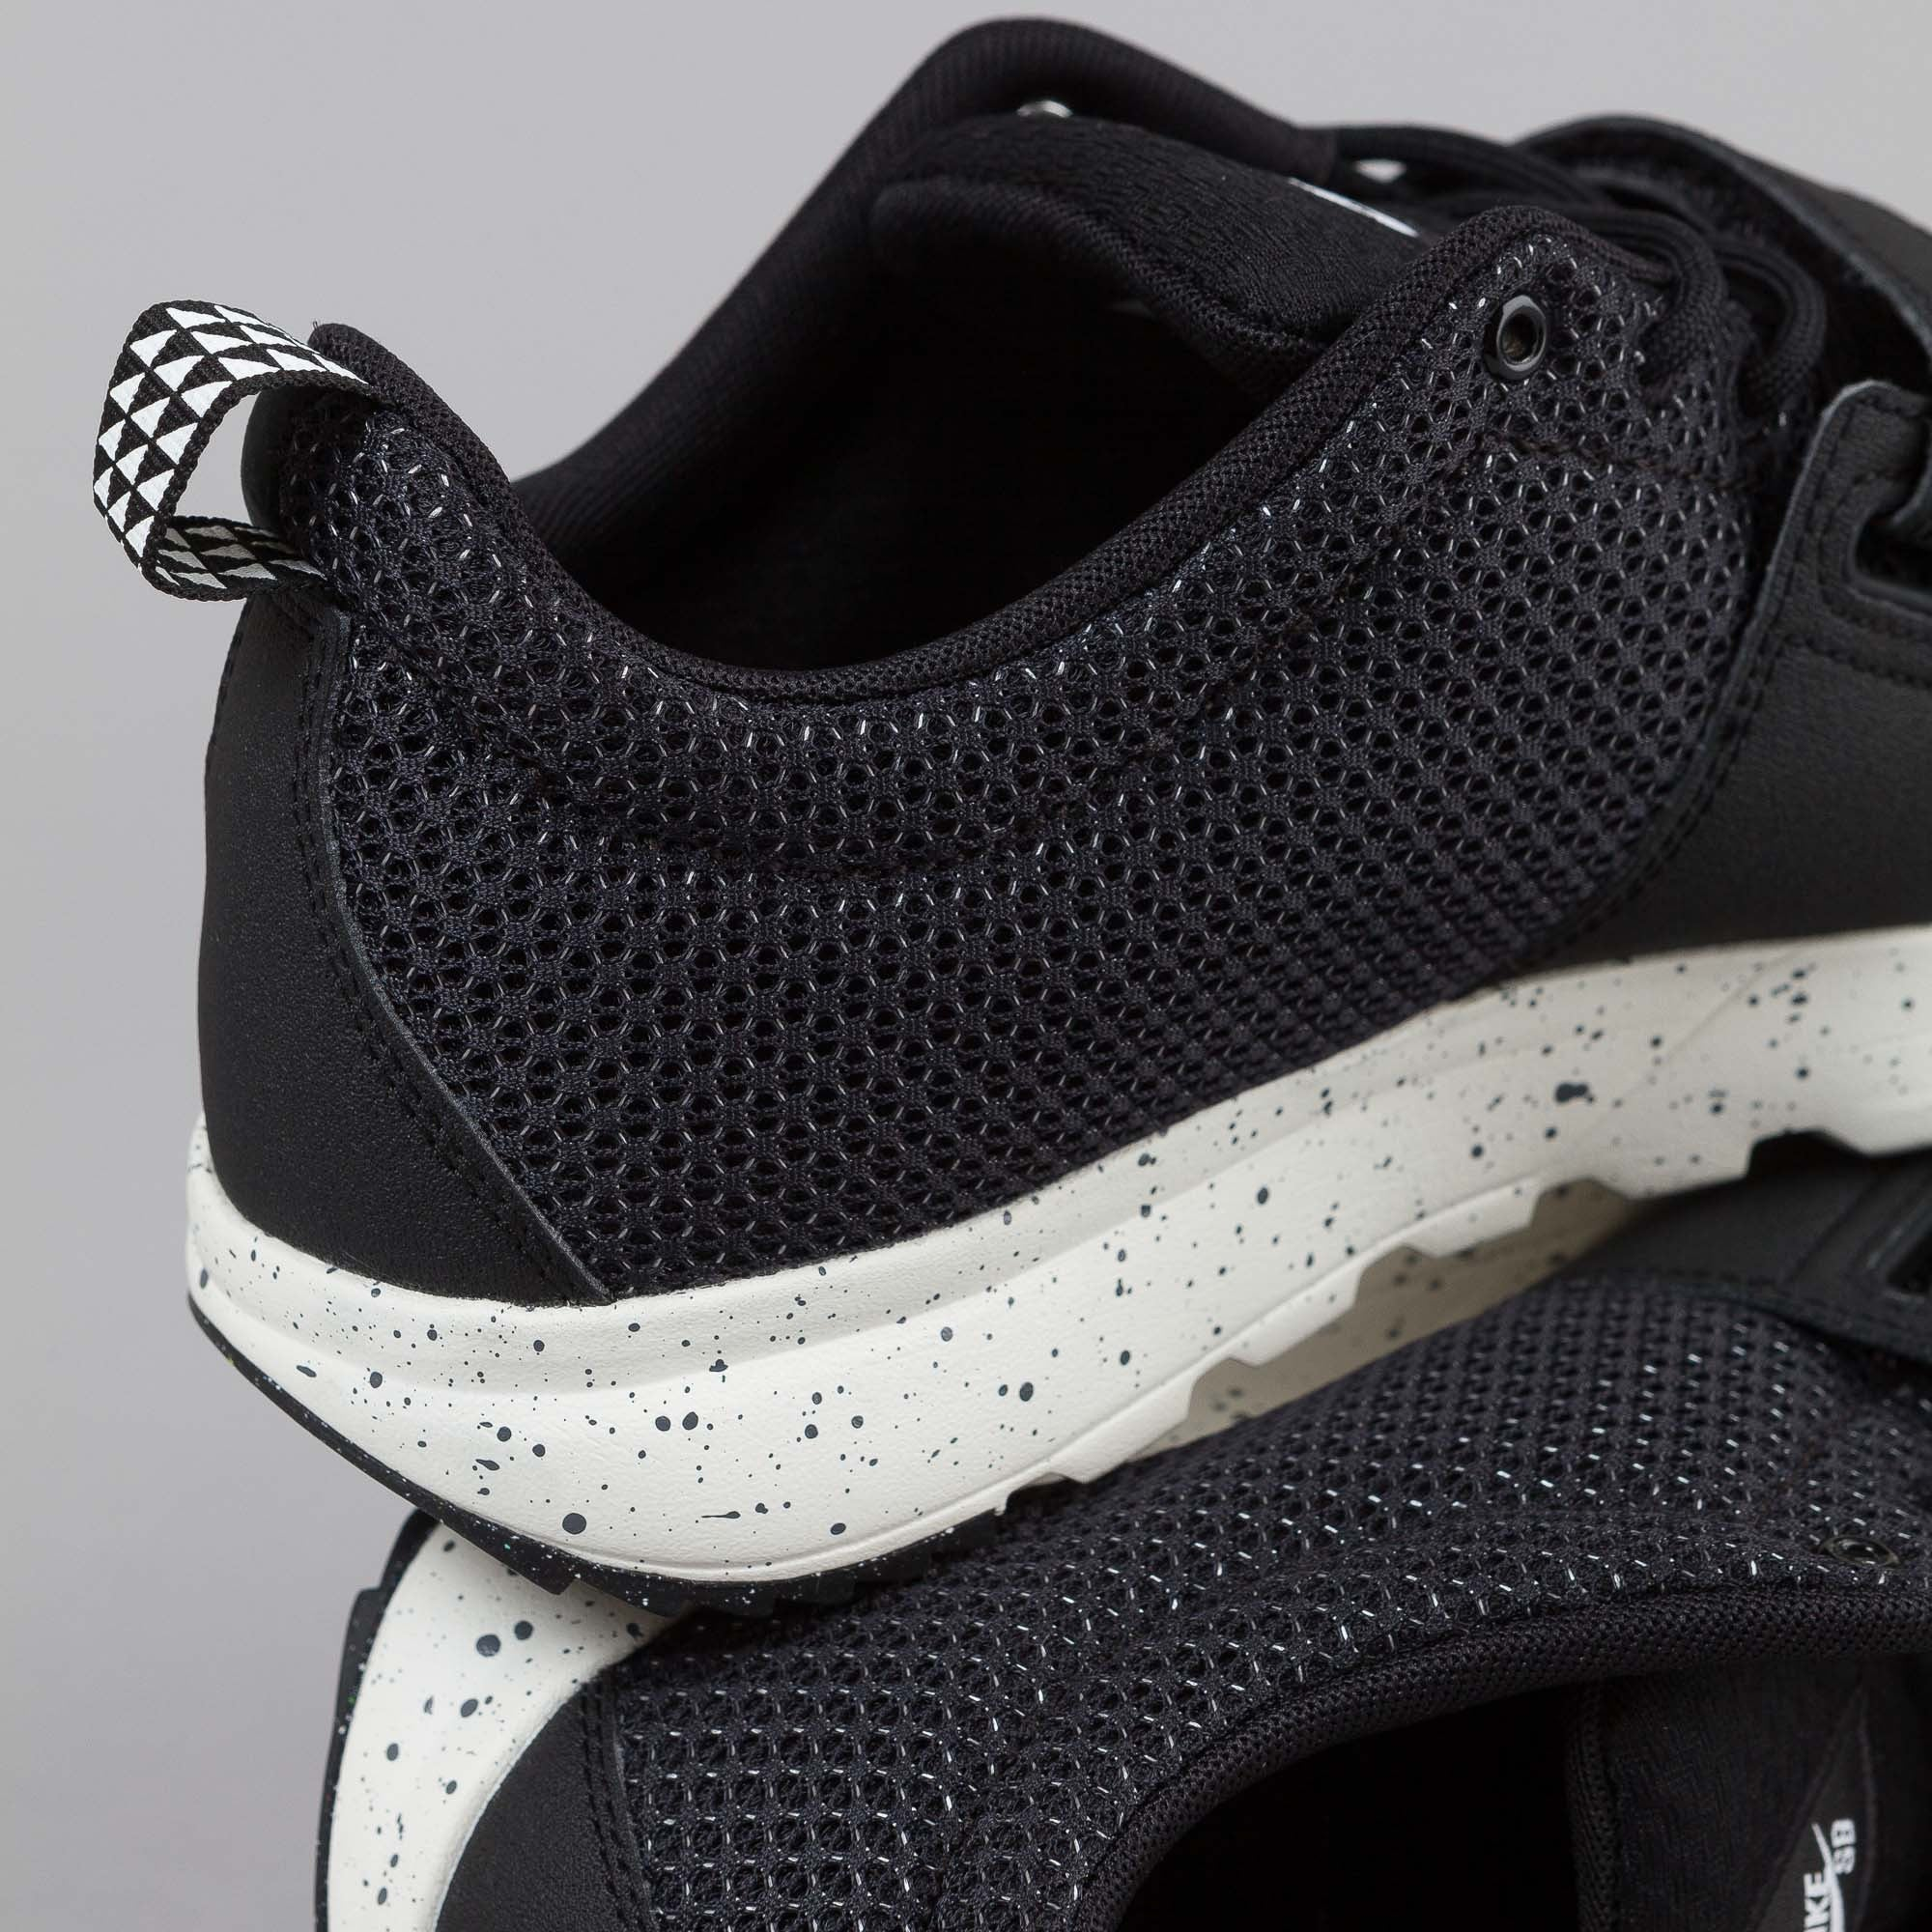 Nike SB Trainerendor Black / Black - White